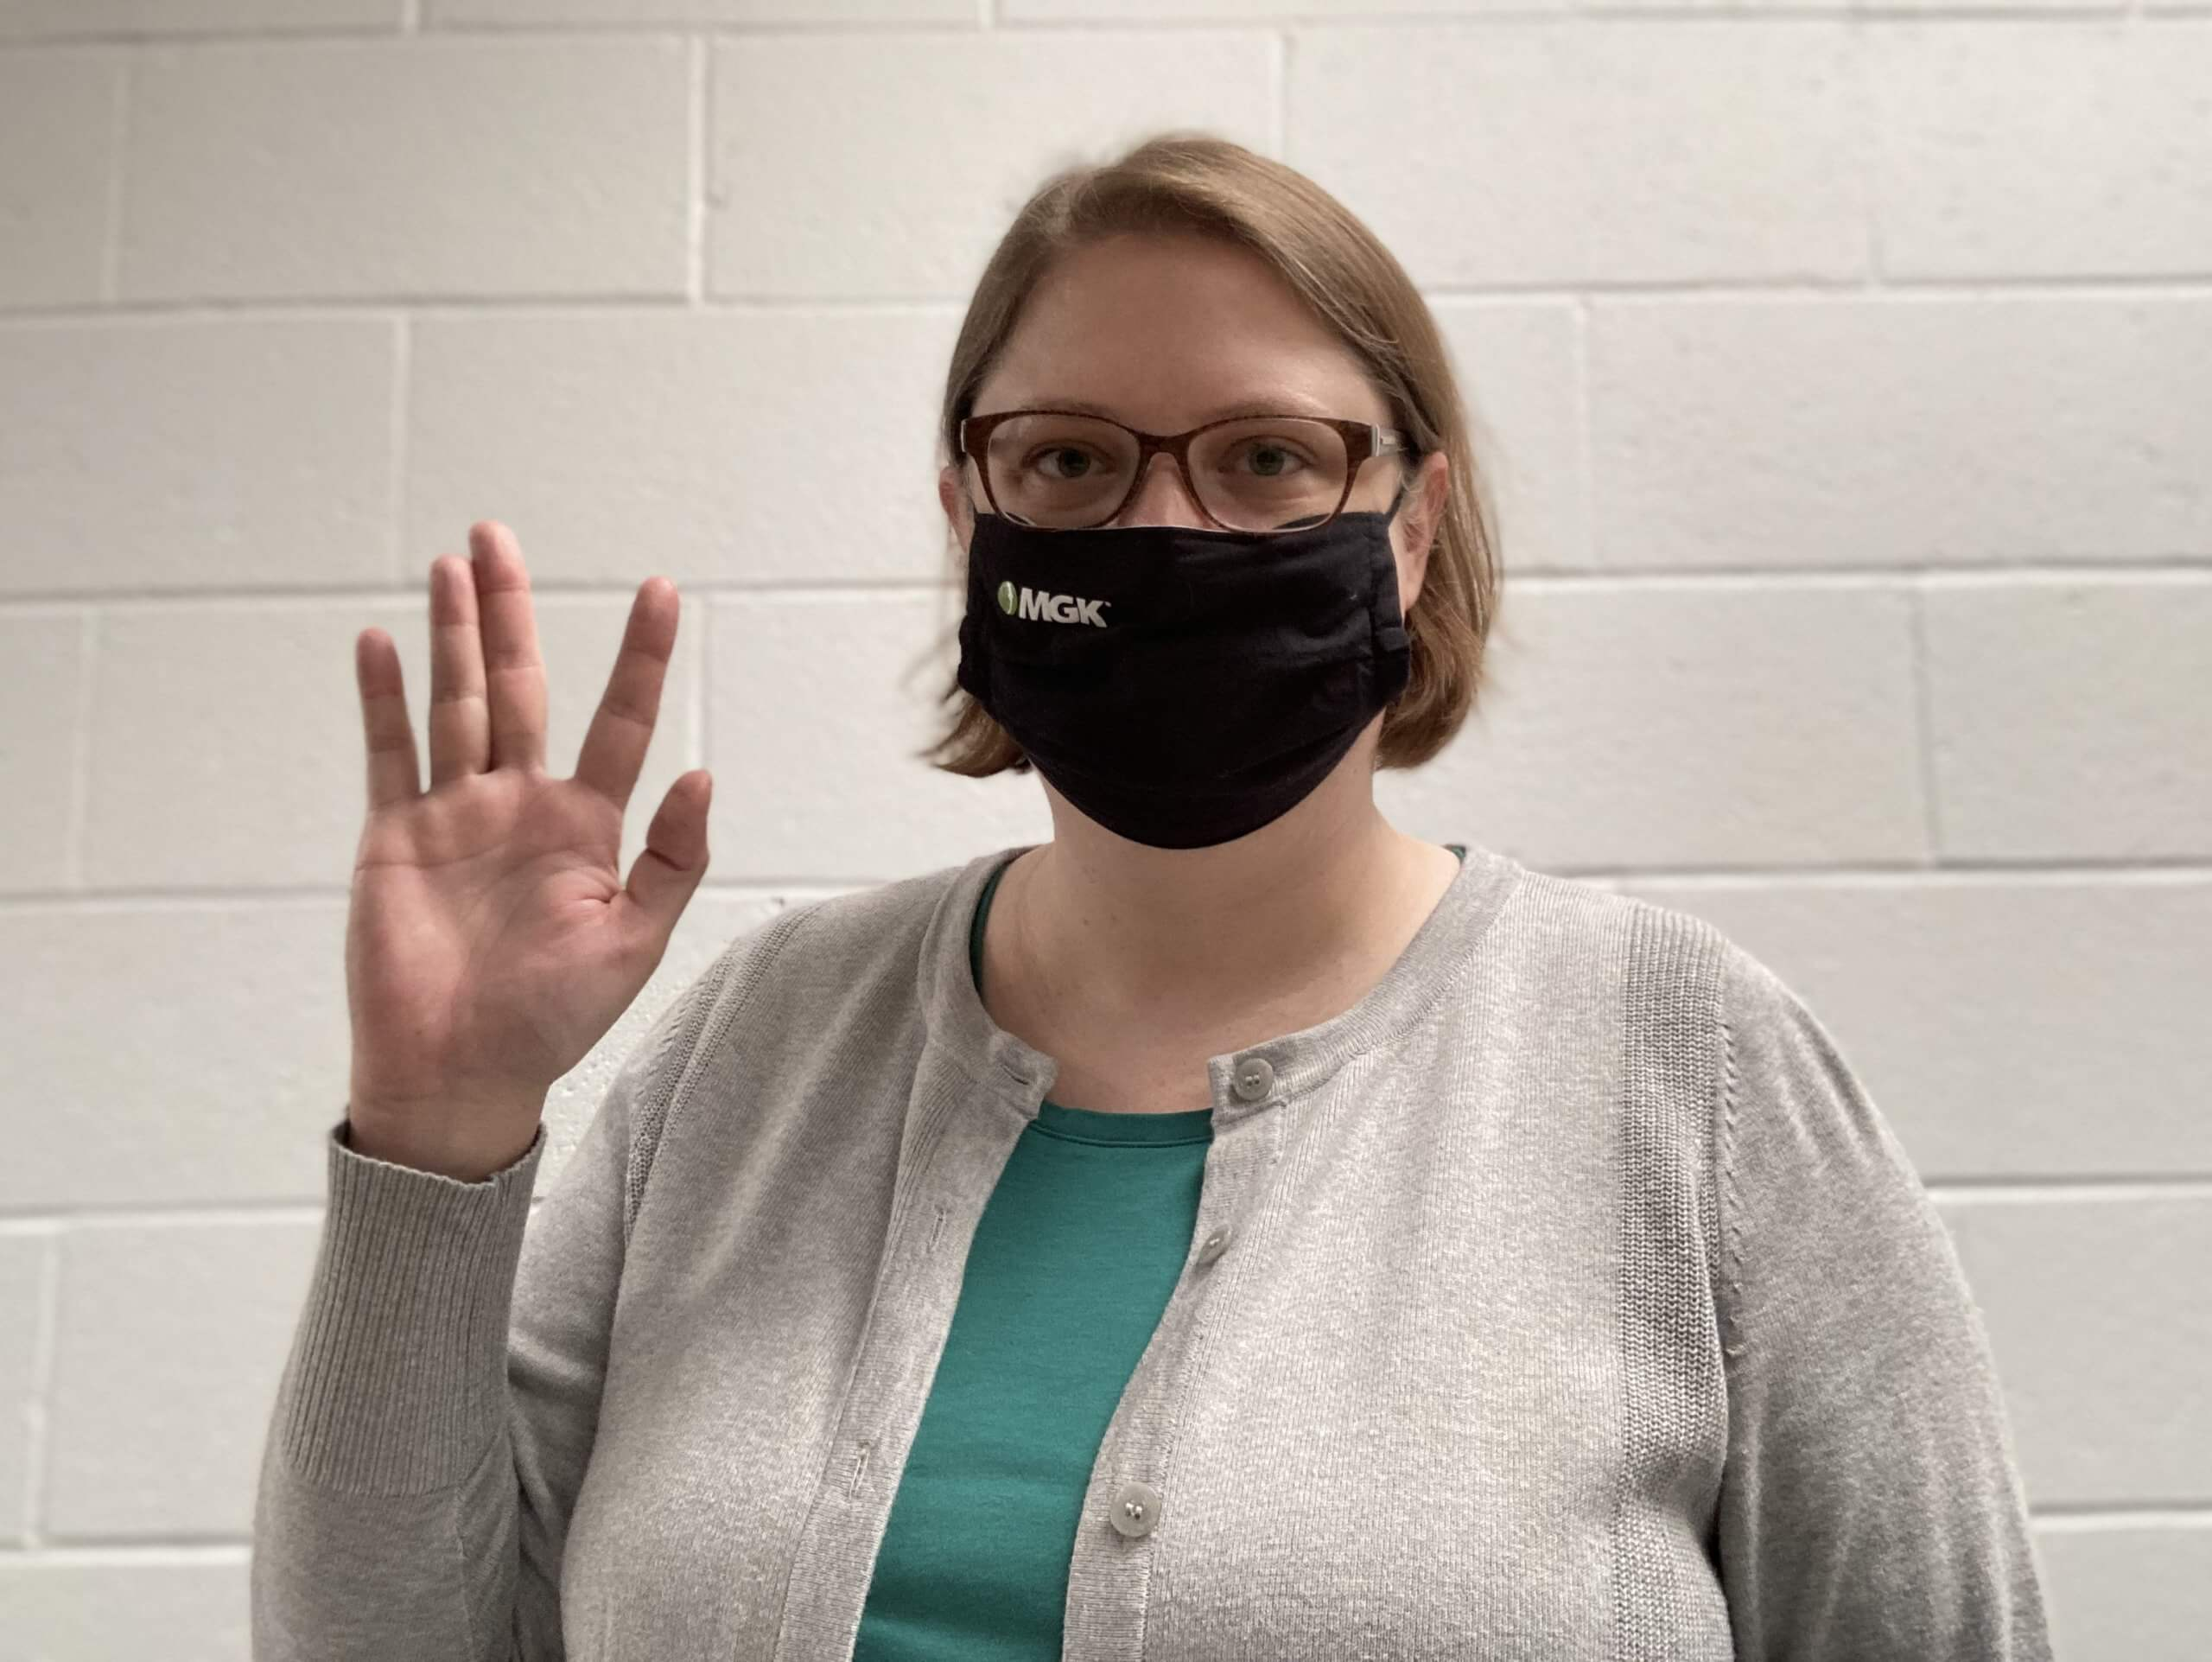 Abby Smith - International Women's Day pose with hand up, wearing MGK branded mask